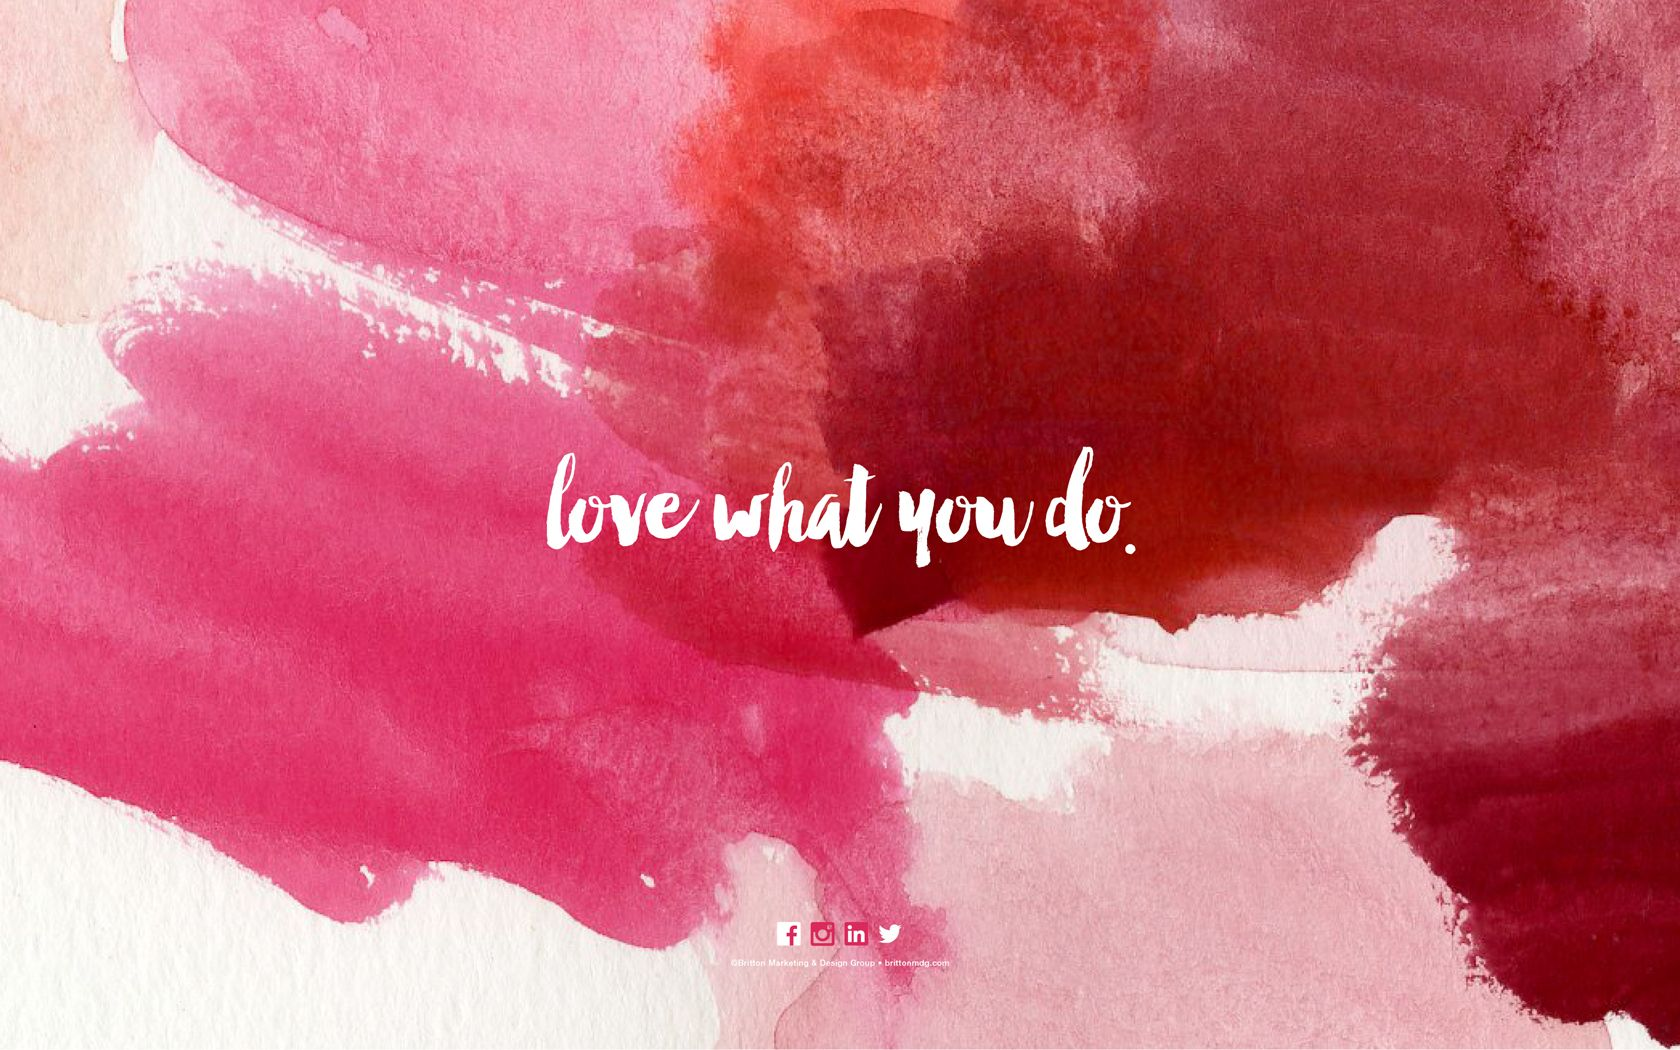 Love What You Do Computer Wallpaper Desktop Wallpapers Laptop